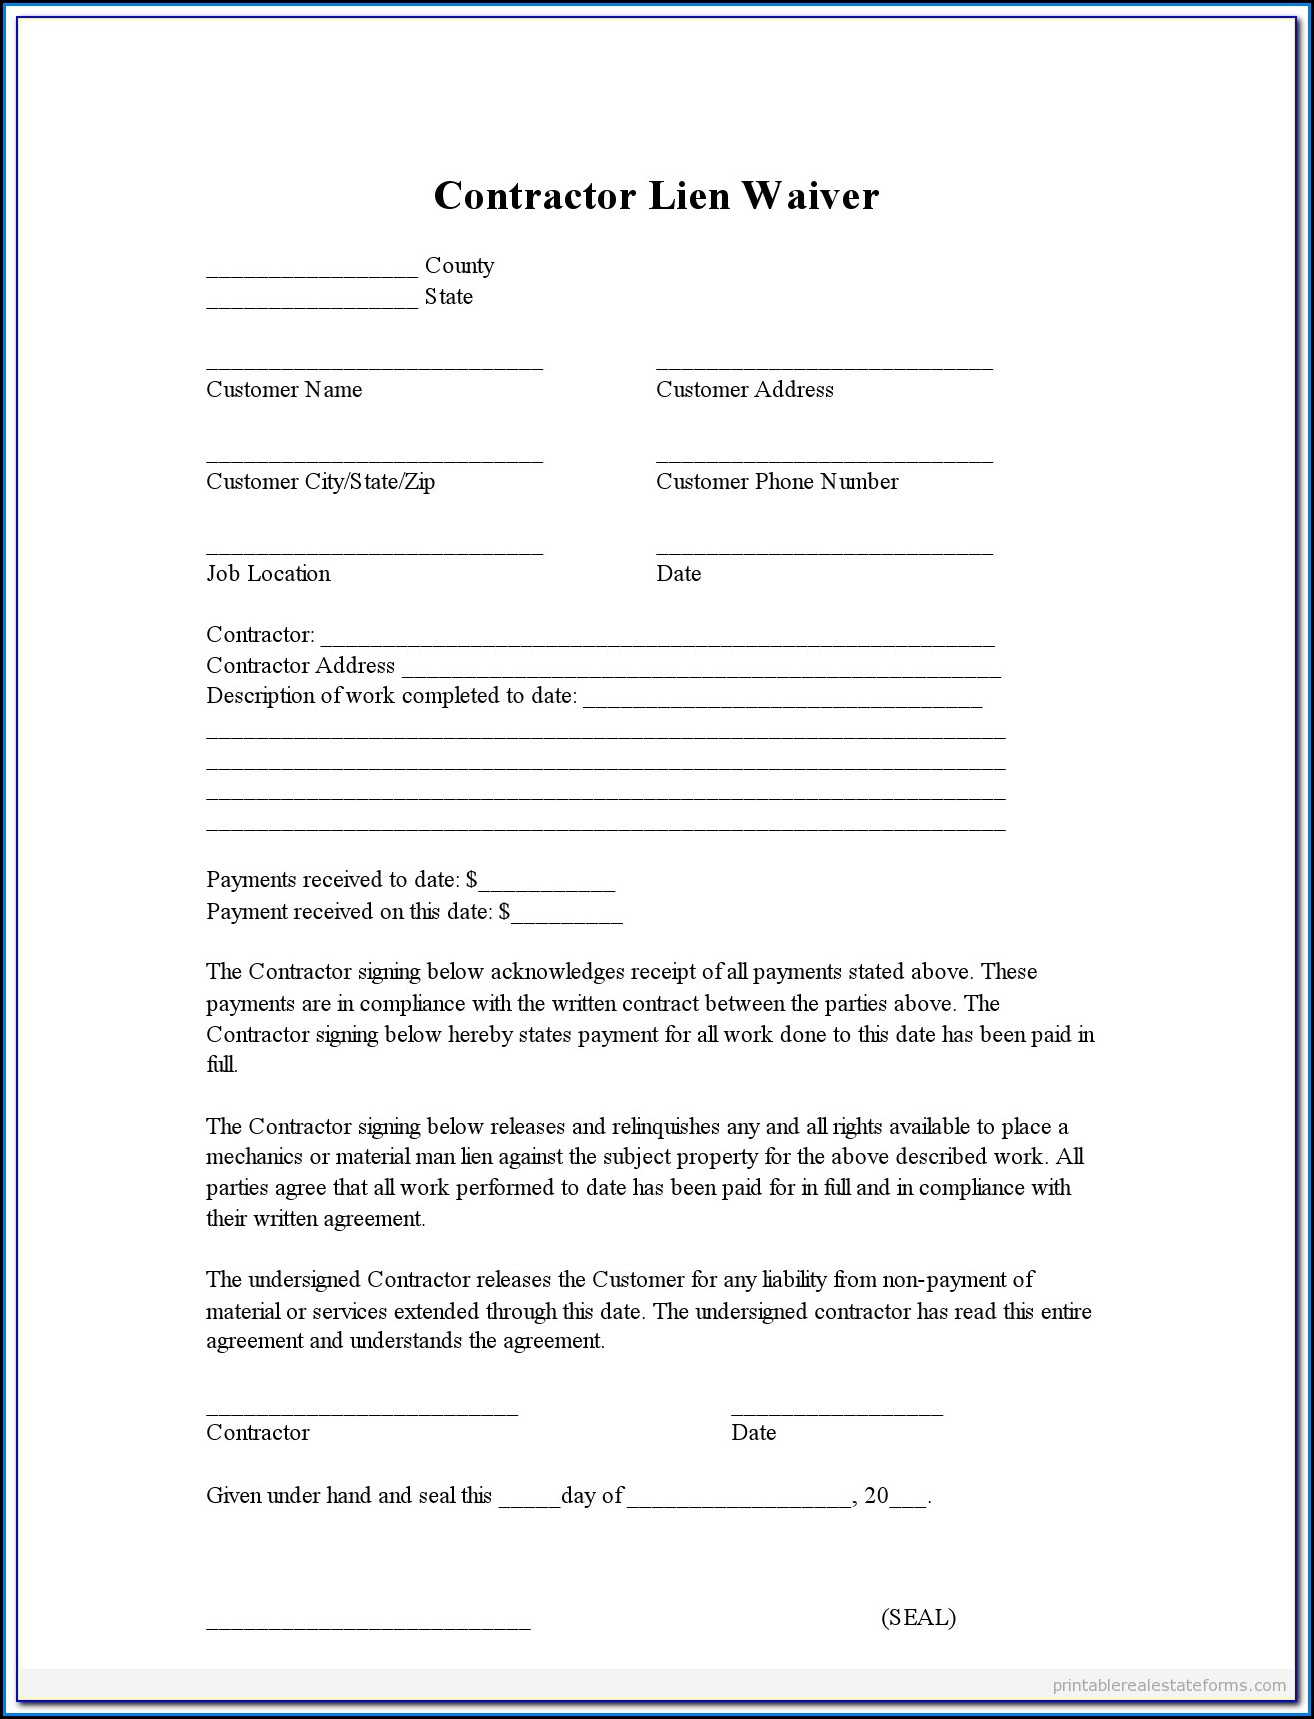 Subcontractor Lien Waiver Form North Carolina